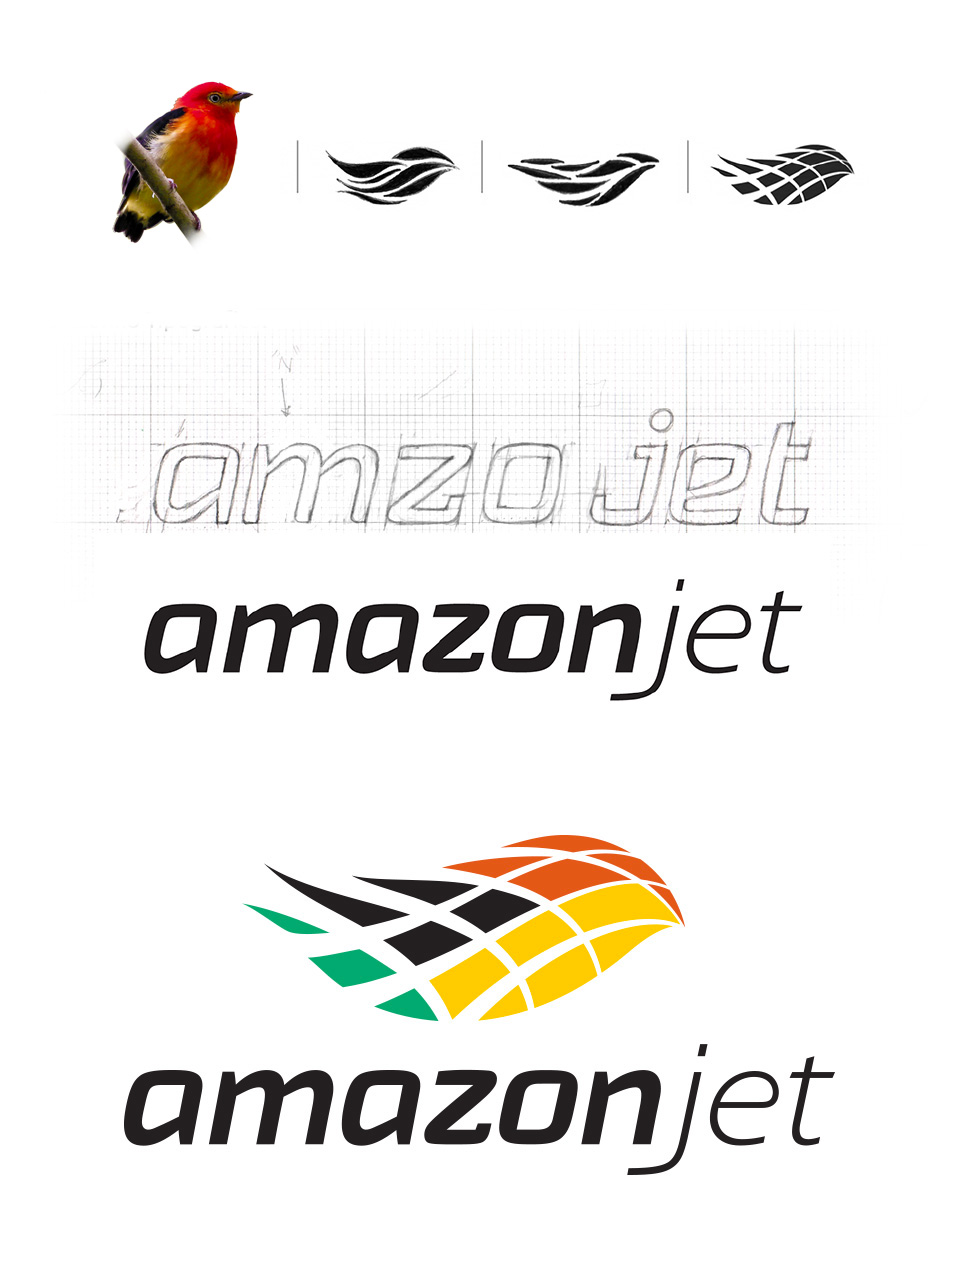 qd-case-amazonjet-construction-02